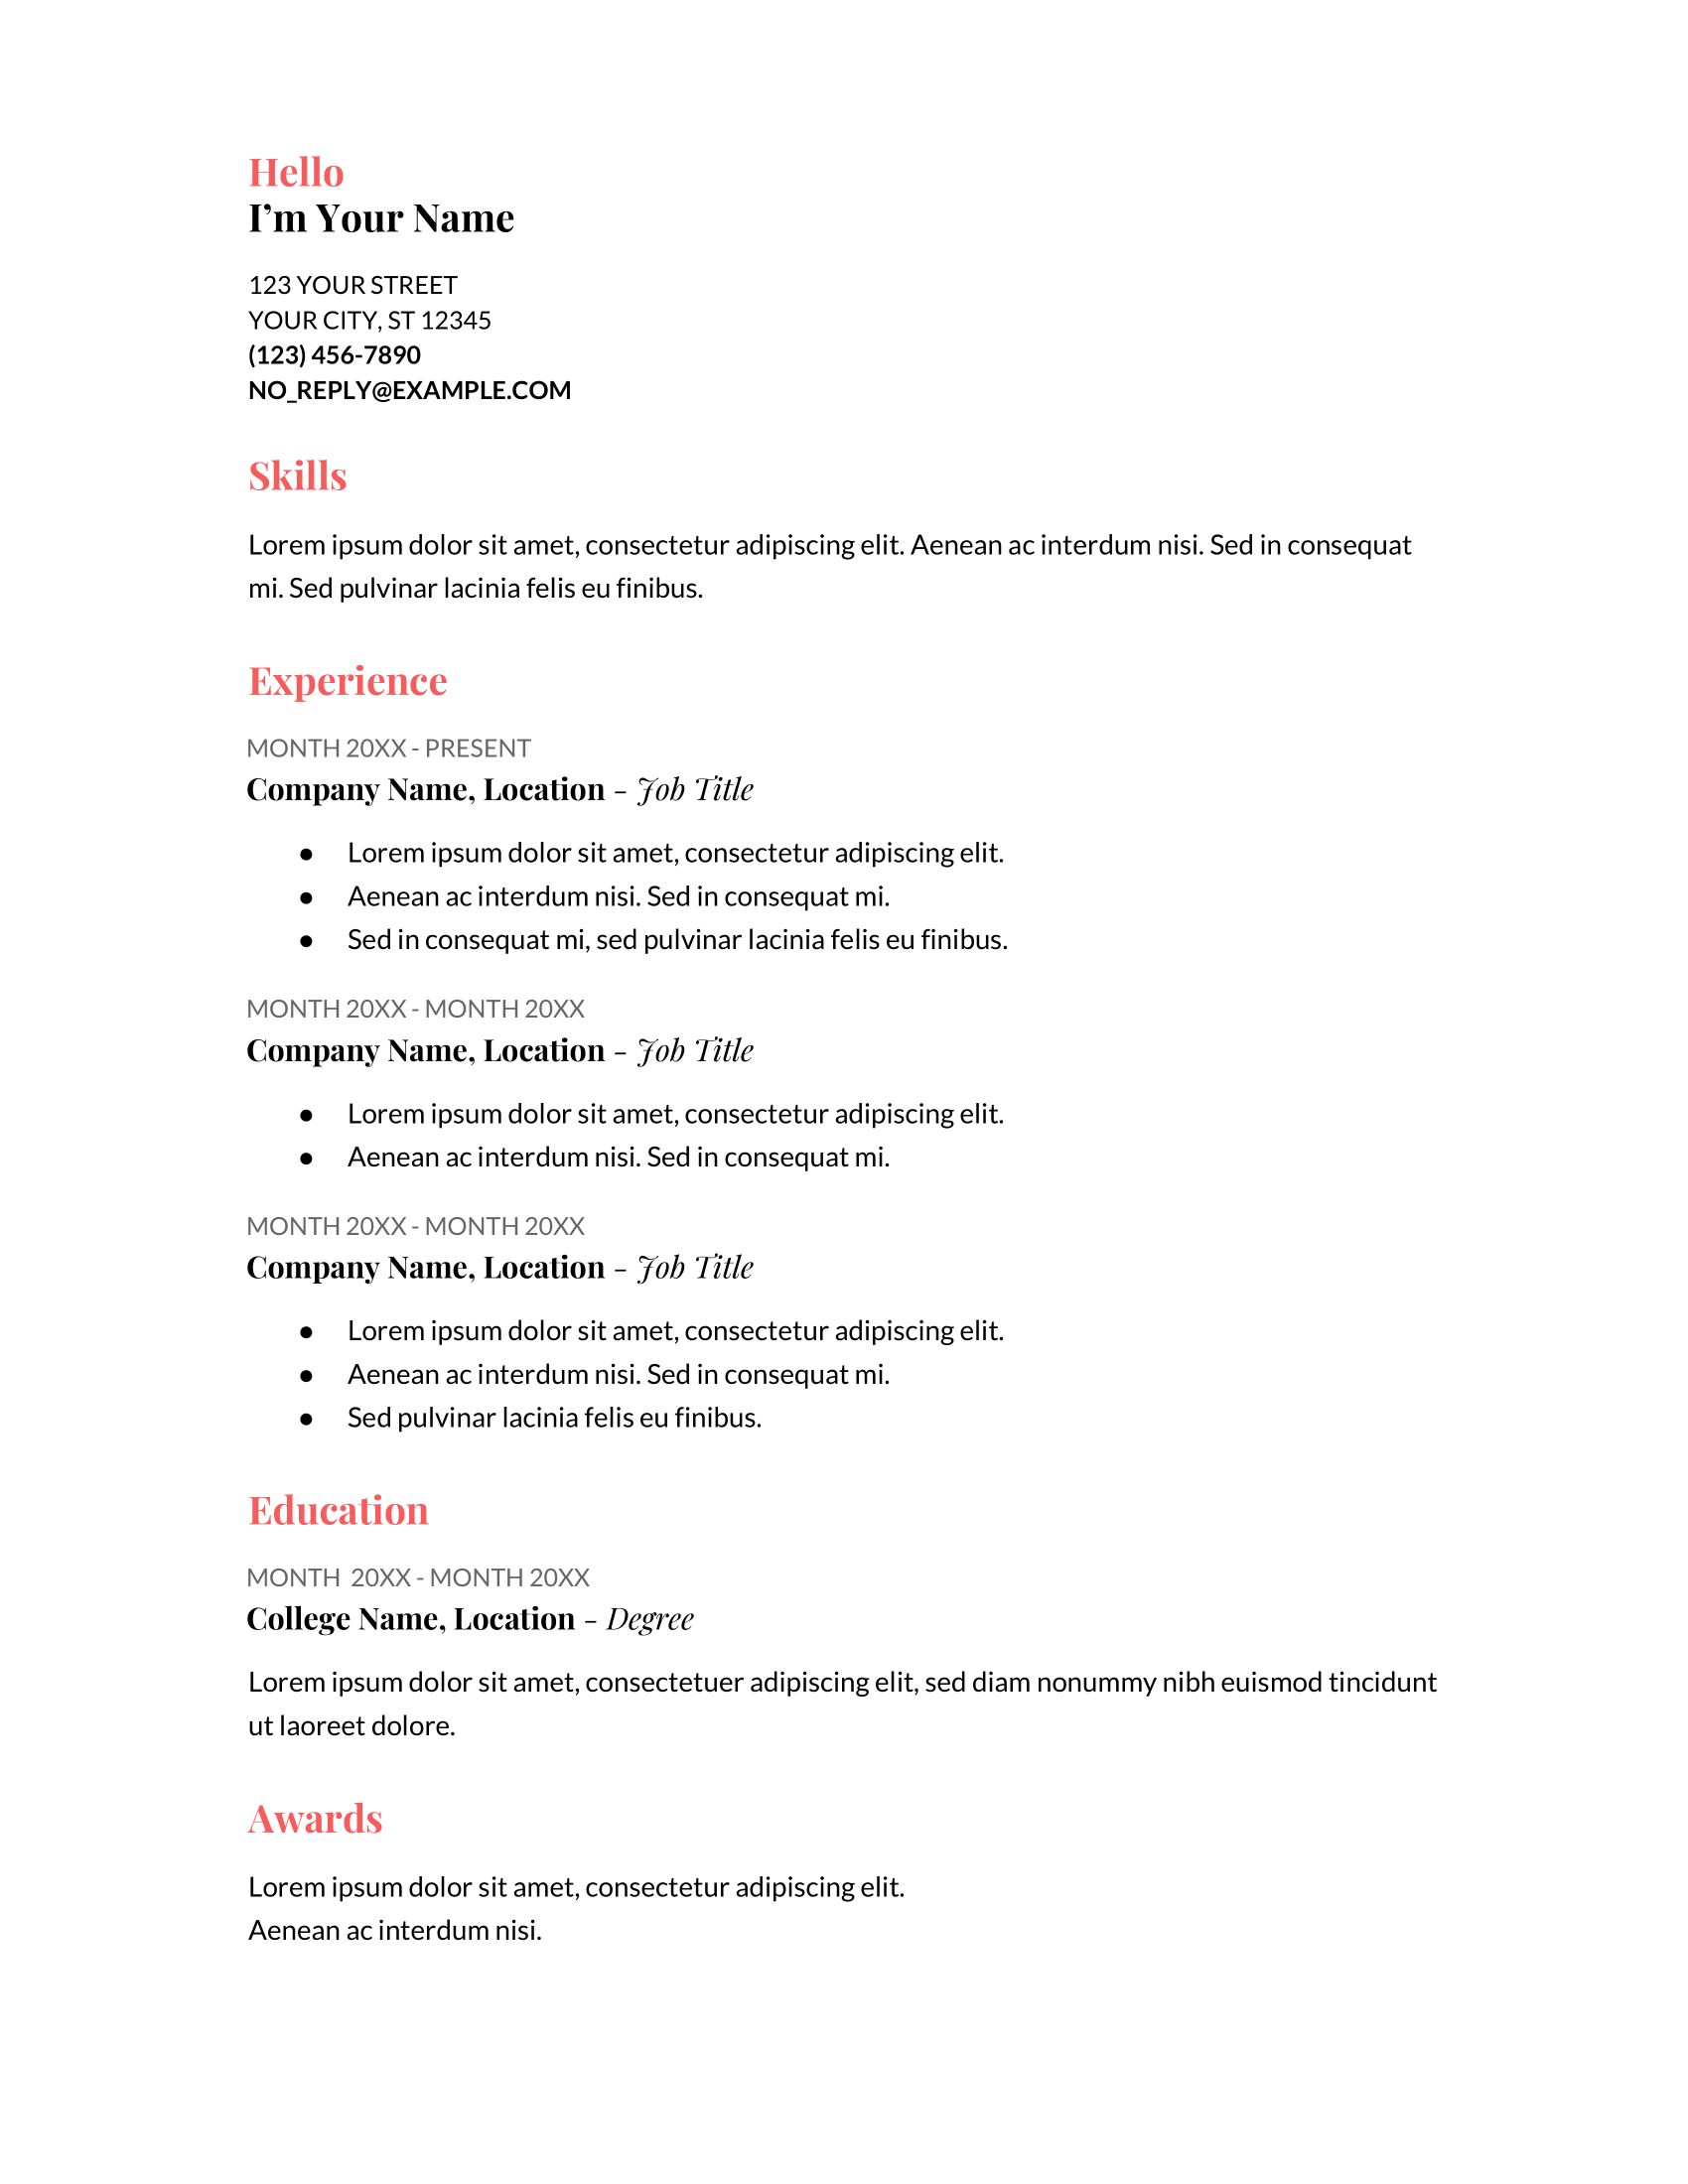 Cover Letter Template Google Drive from d.novoresume.com